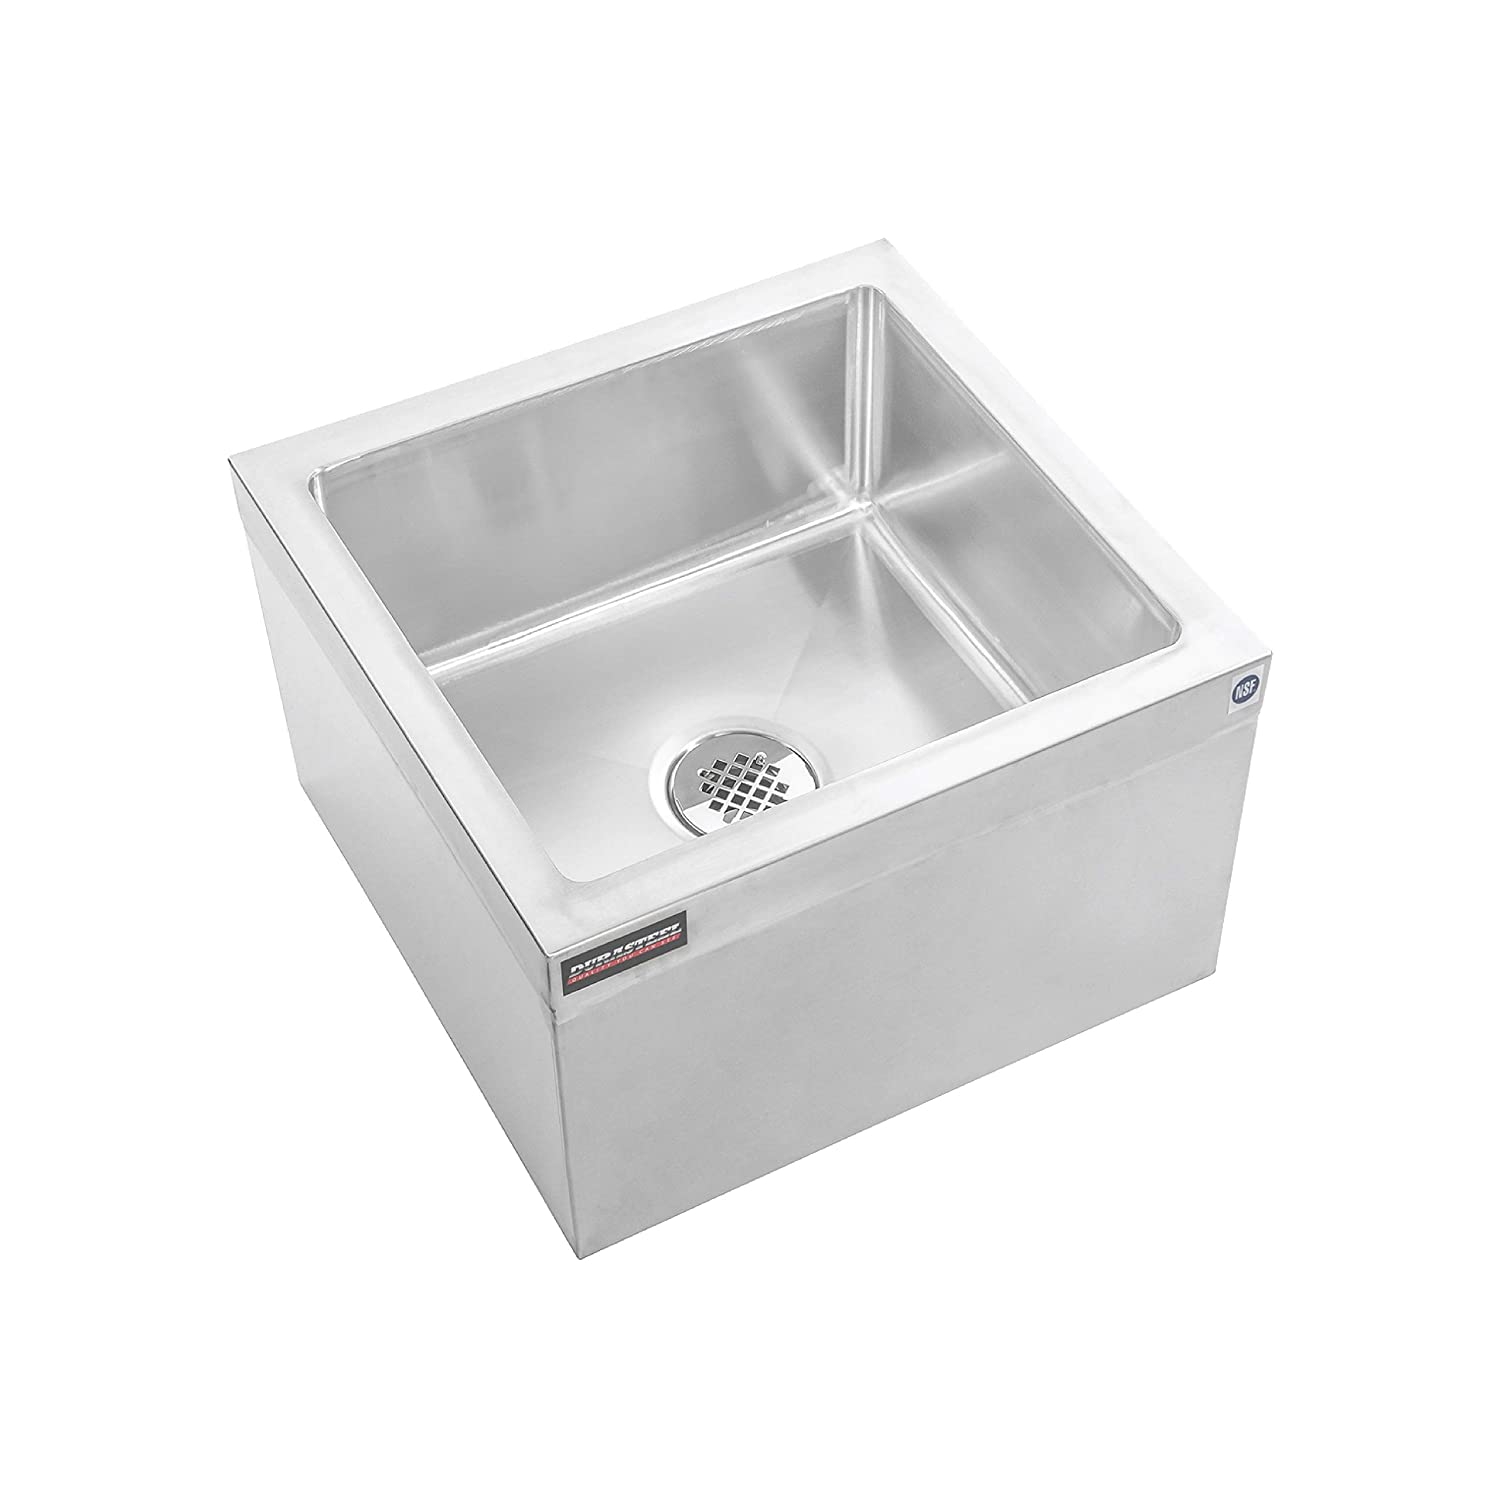 "DuraSteel Stainless Steel Floor Mount Mop Sink/Basin with Sink Drainage/Strainer and Mounting Accessories - 24"" W x 24"" L x 13"" H (Commercial kitchen, Restaurant, Business, Garages, Basements)"